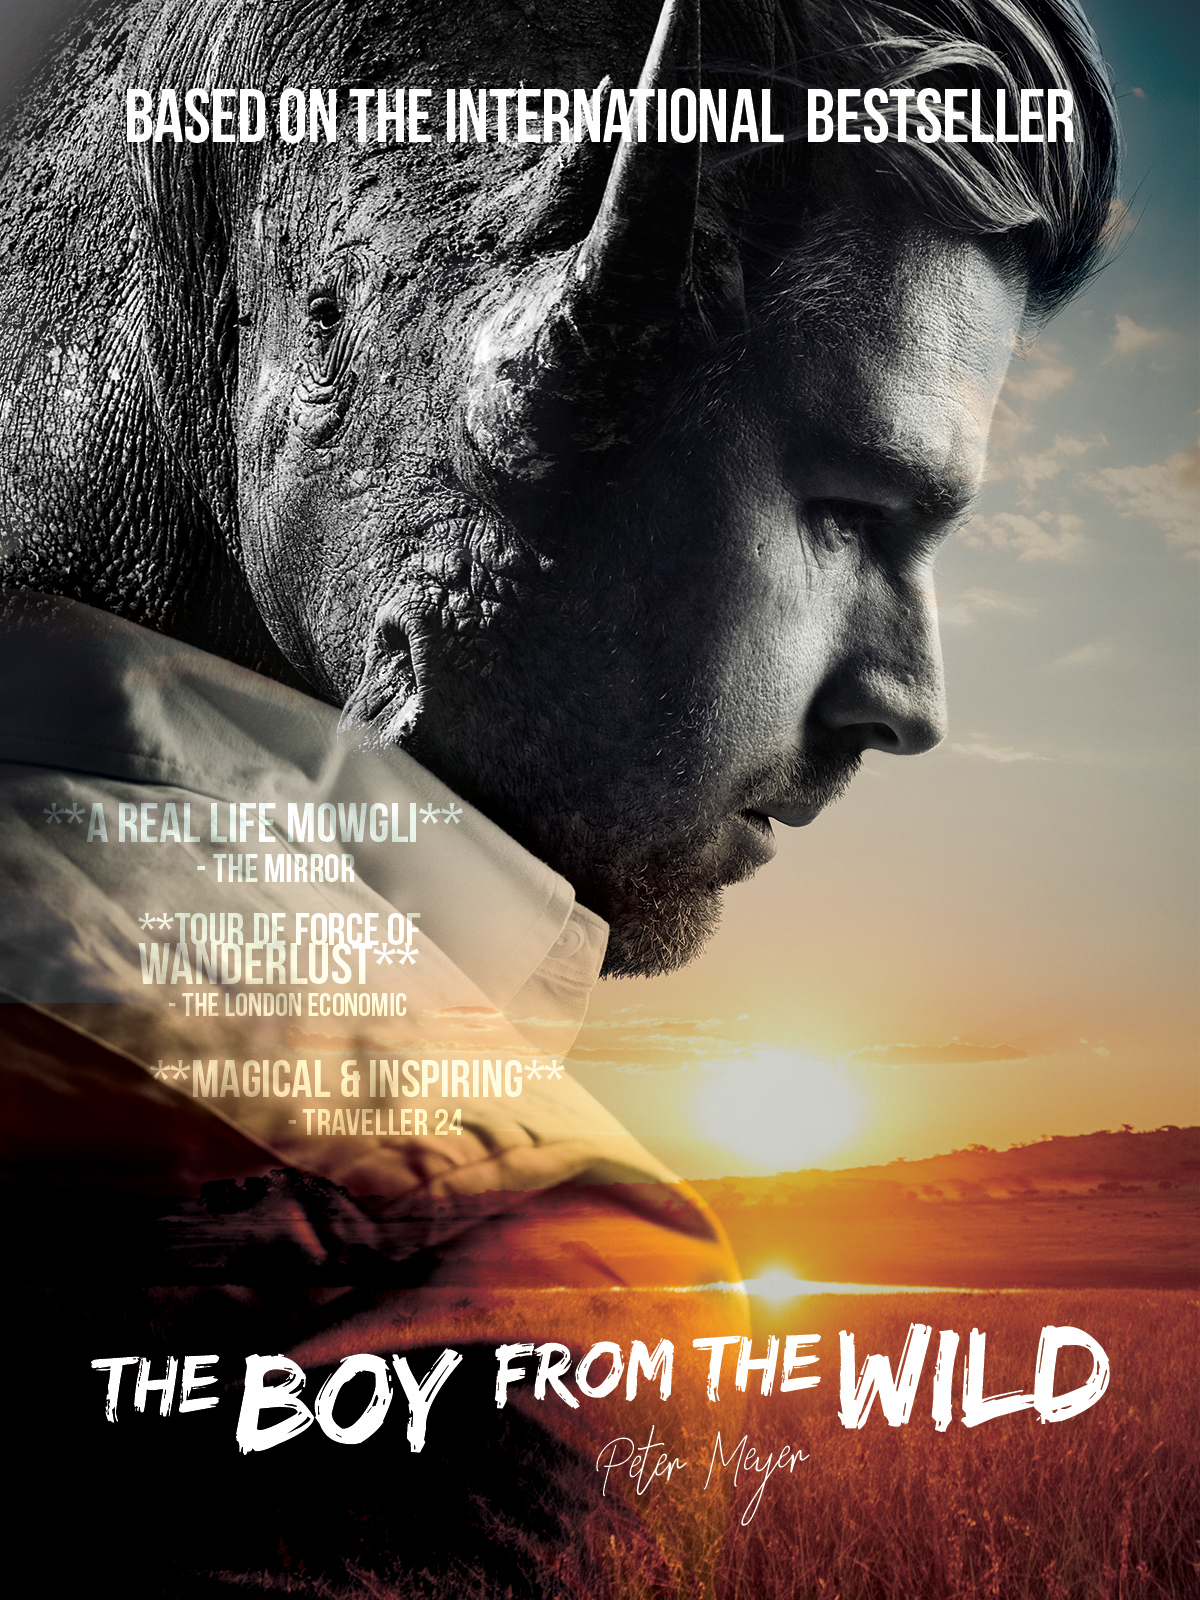 Boy from the Wild_Poster 1200X1600_3_Press.jpg